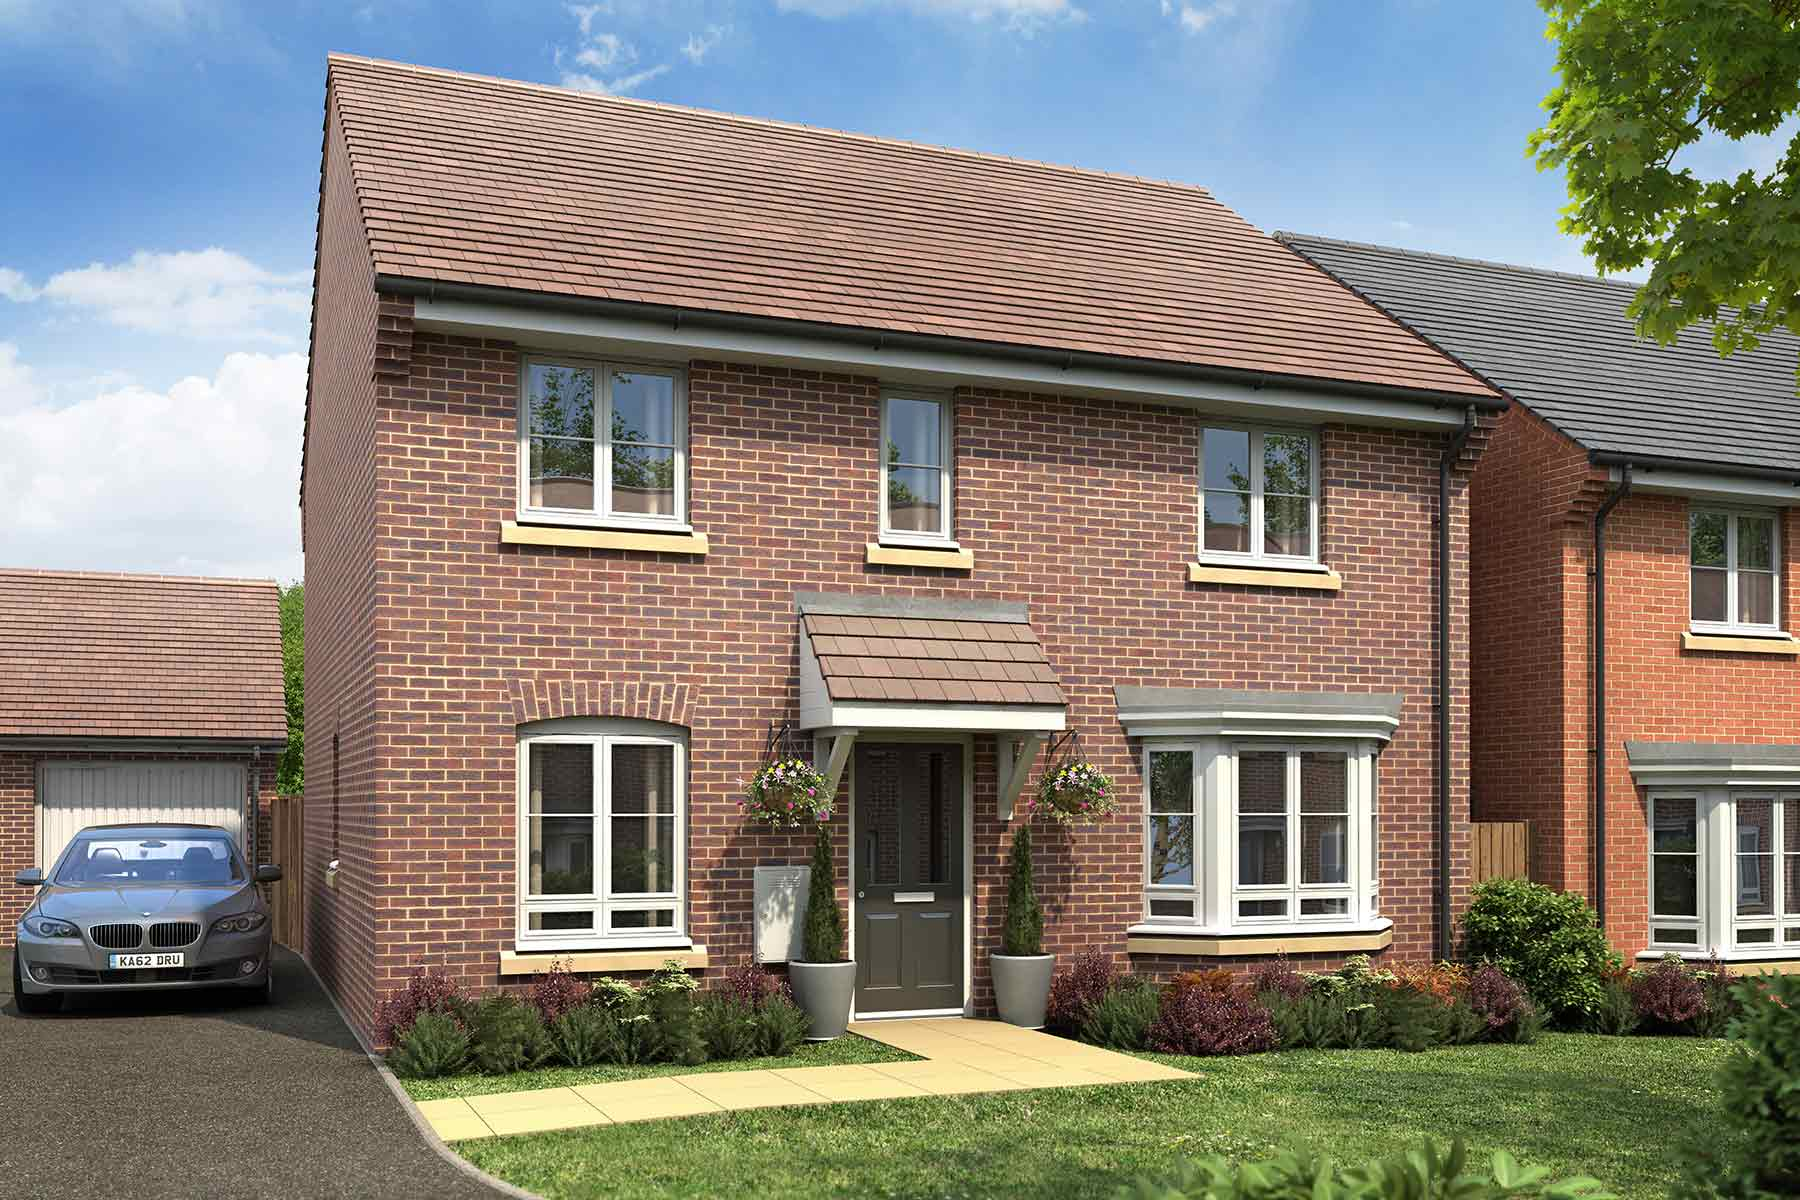 CGI-PA48-Shelford-Plot-90-Woodford-Meadow